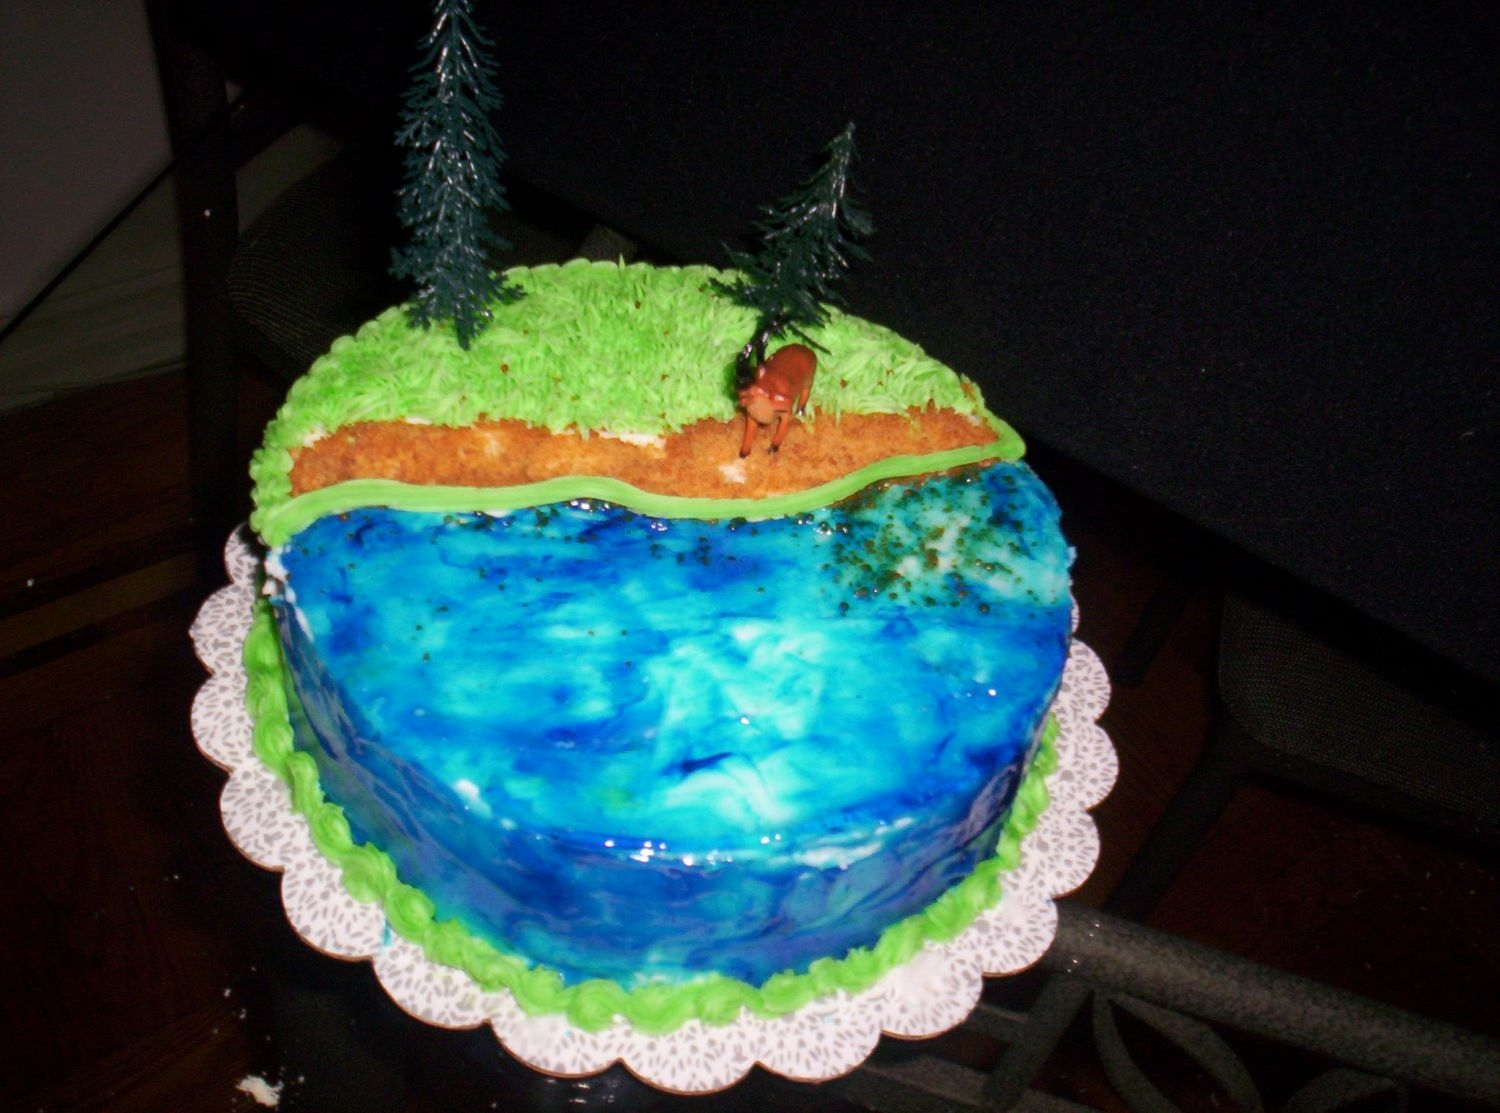 100_0085.jpg   6-4-05 special dominican cake deocation